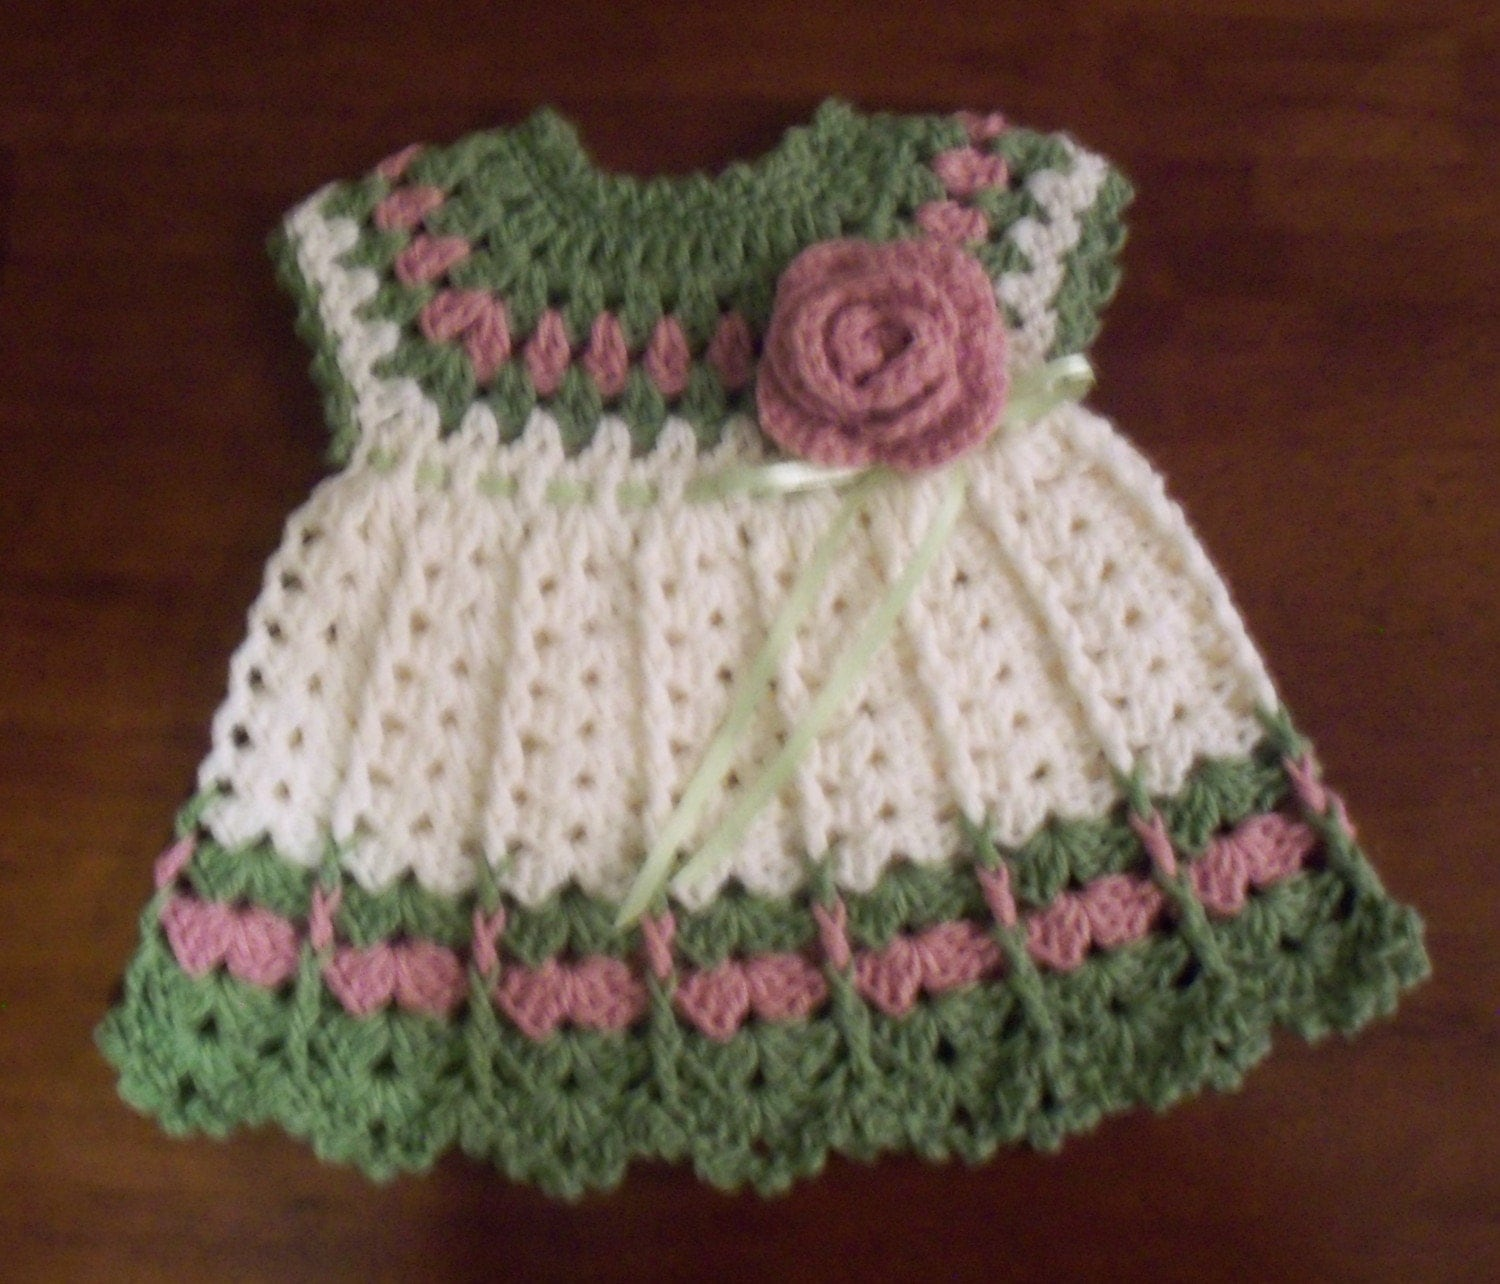 Crochet Baby Outfit Patterns : Rosebud Baby Dress Pattern 0-3 and 3-6 month by ...